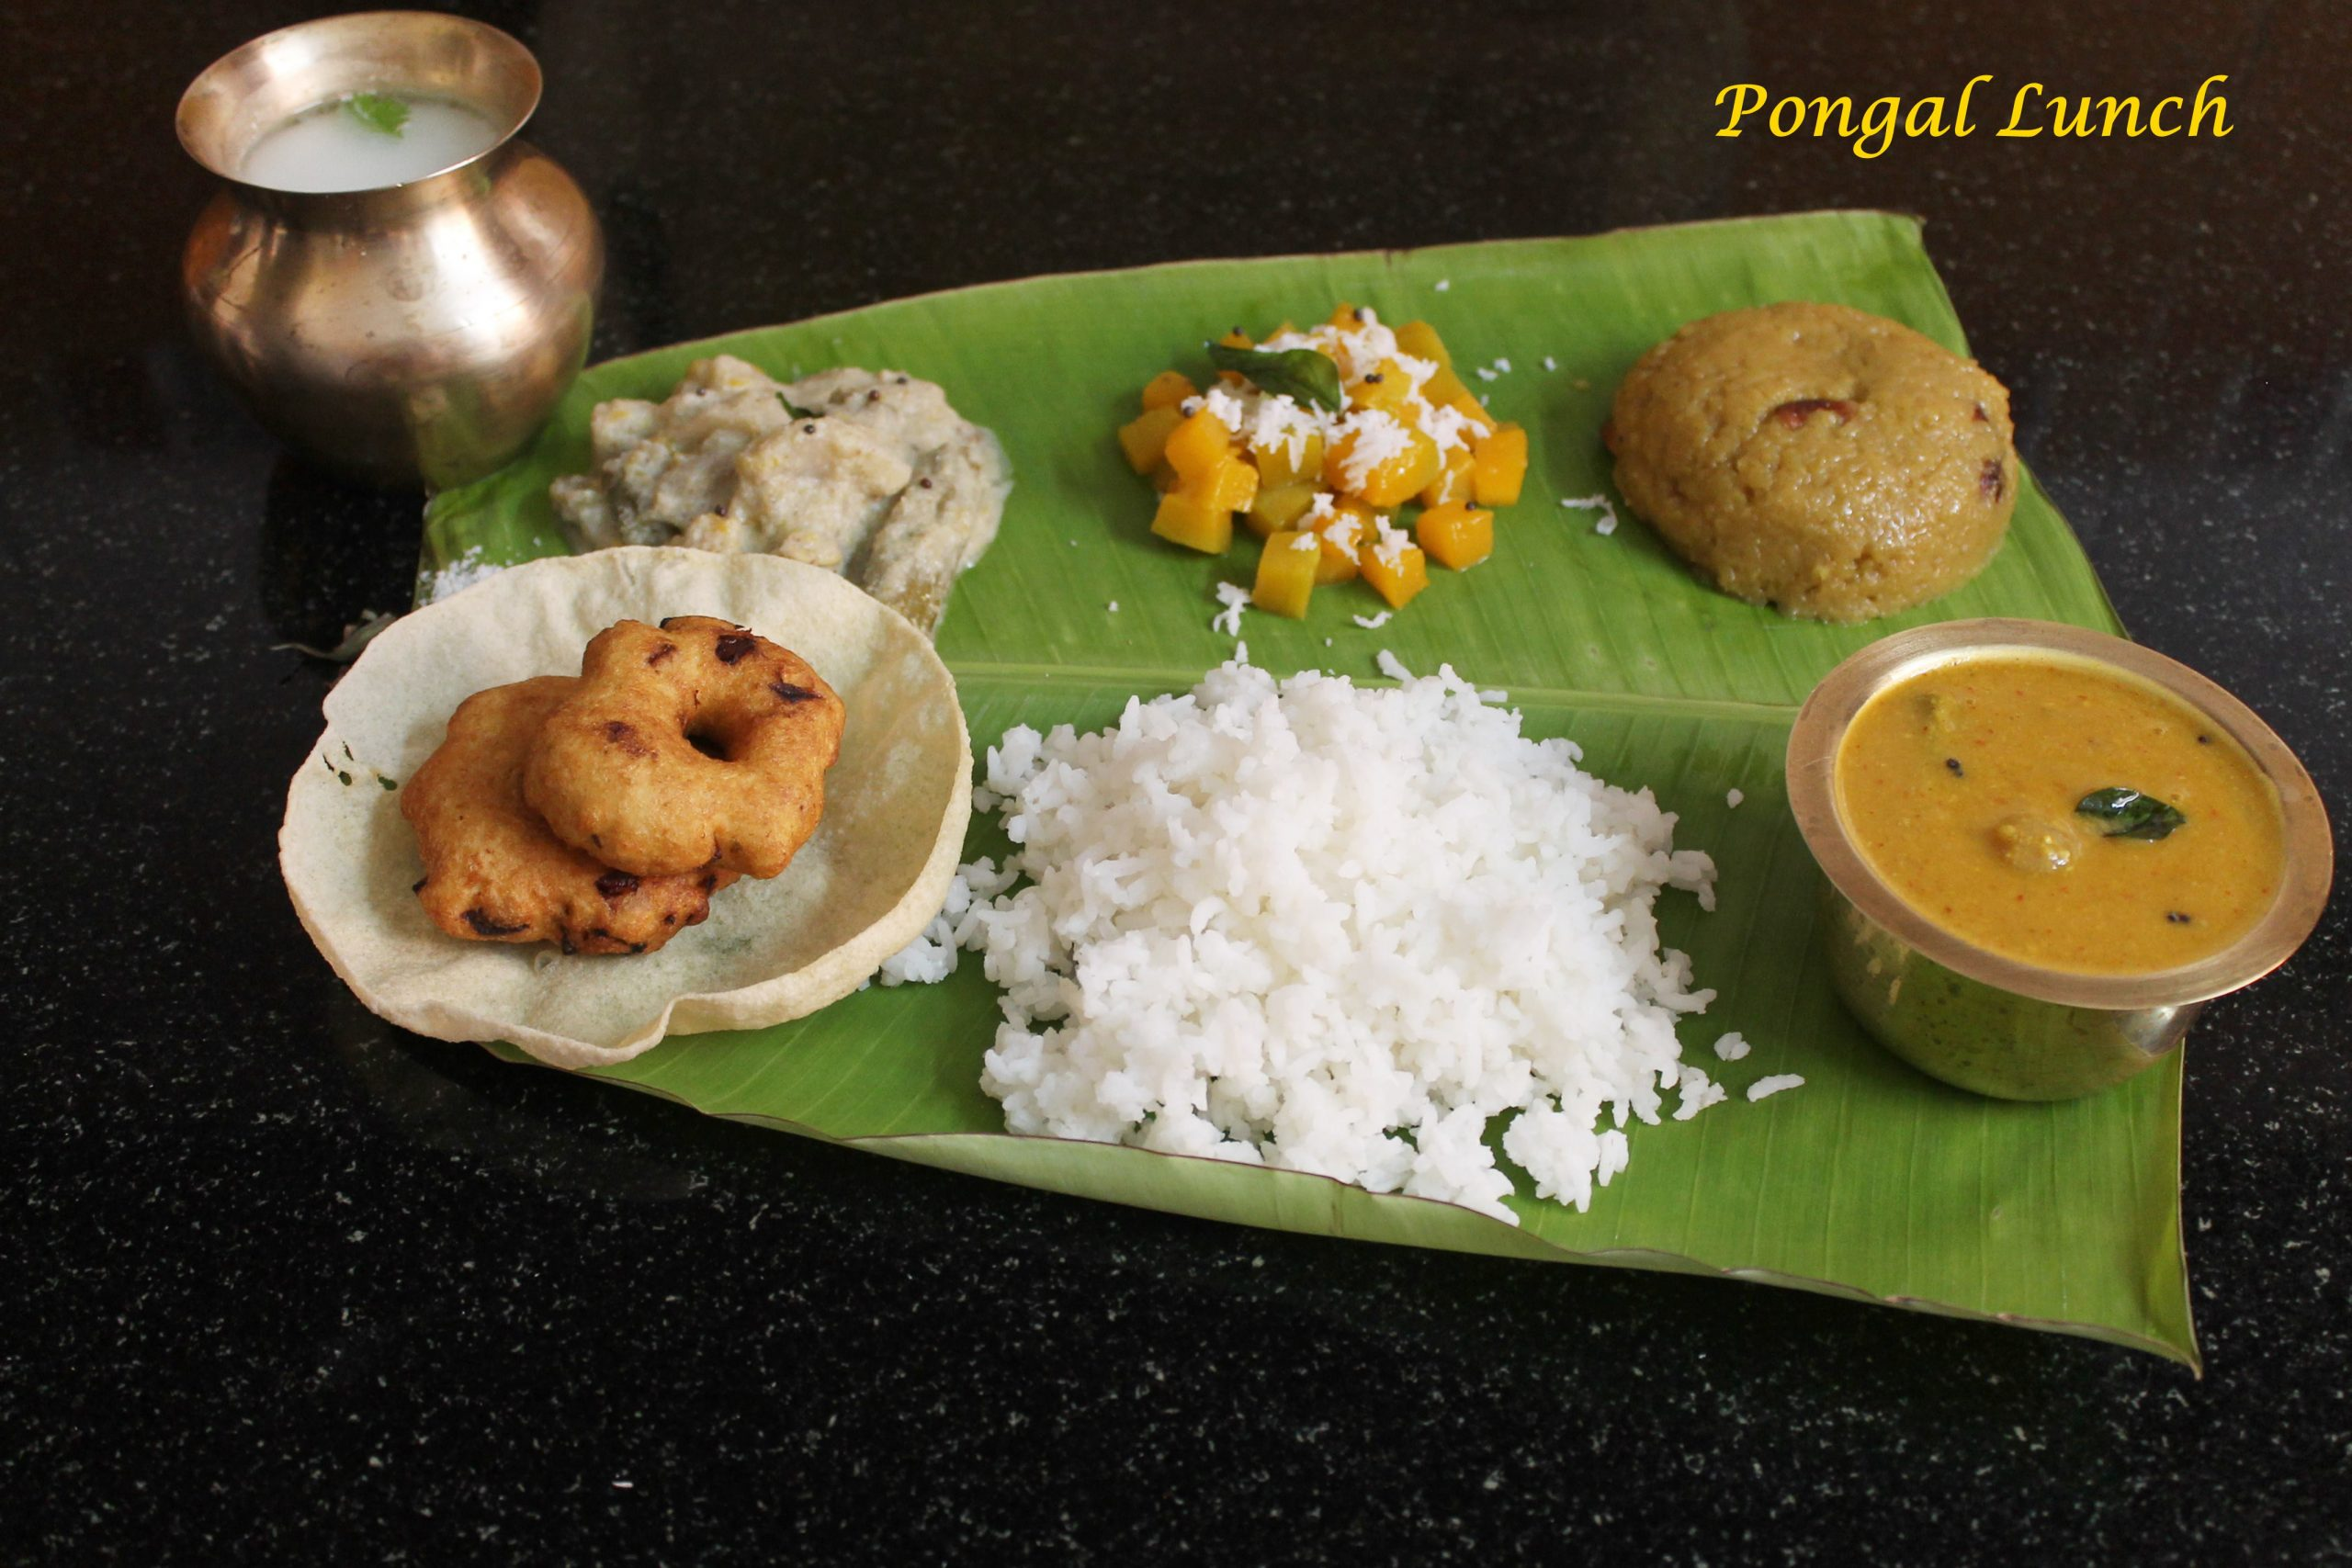 Pongal festival lunch